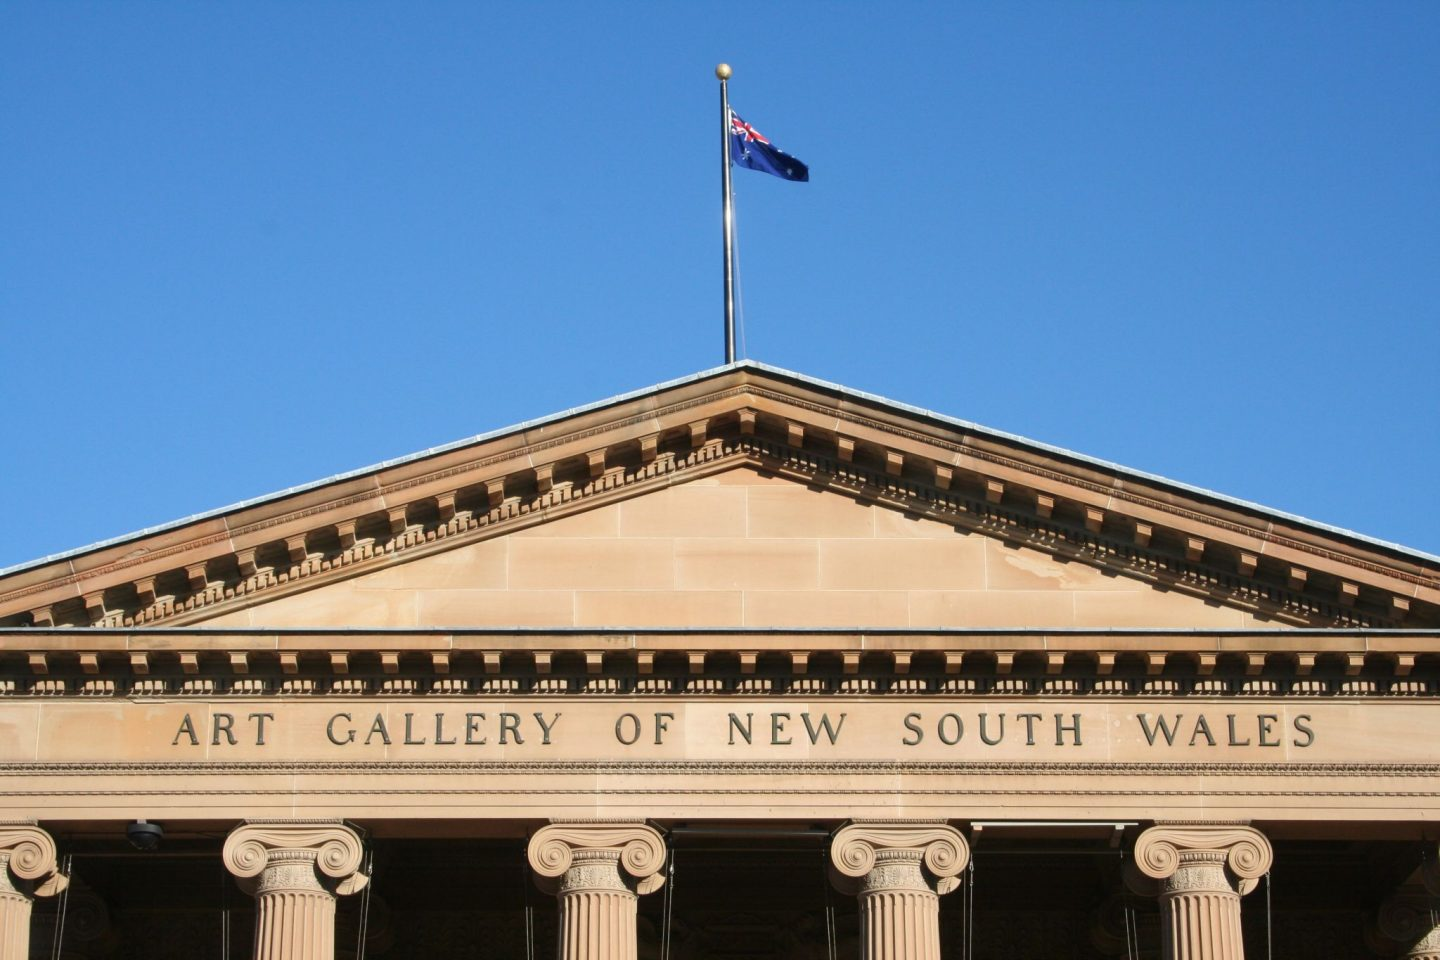 Top of the The Art Gallery of New South Wales building